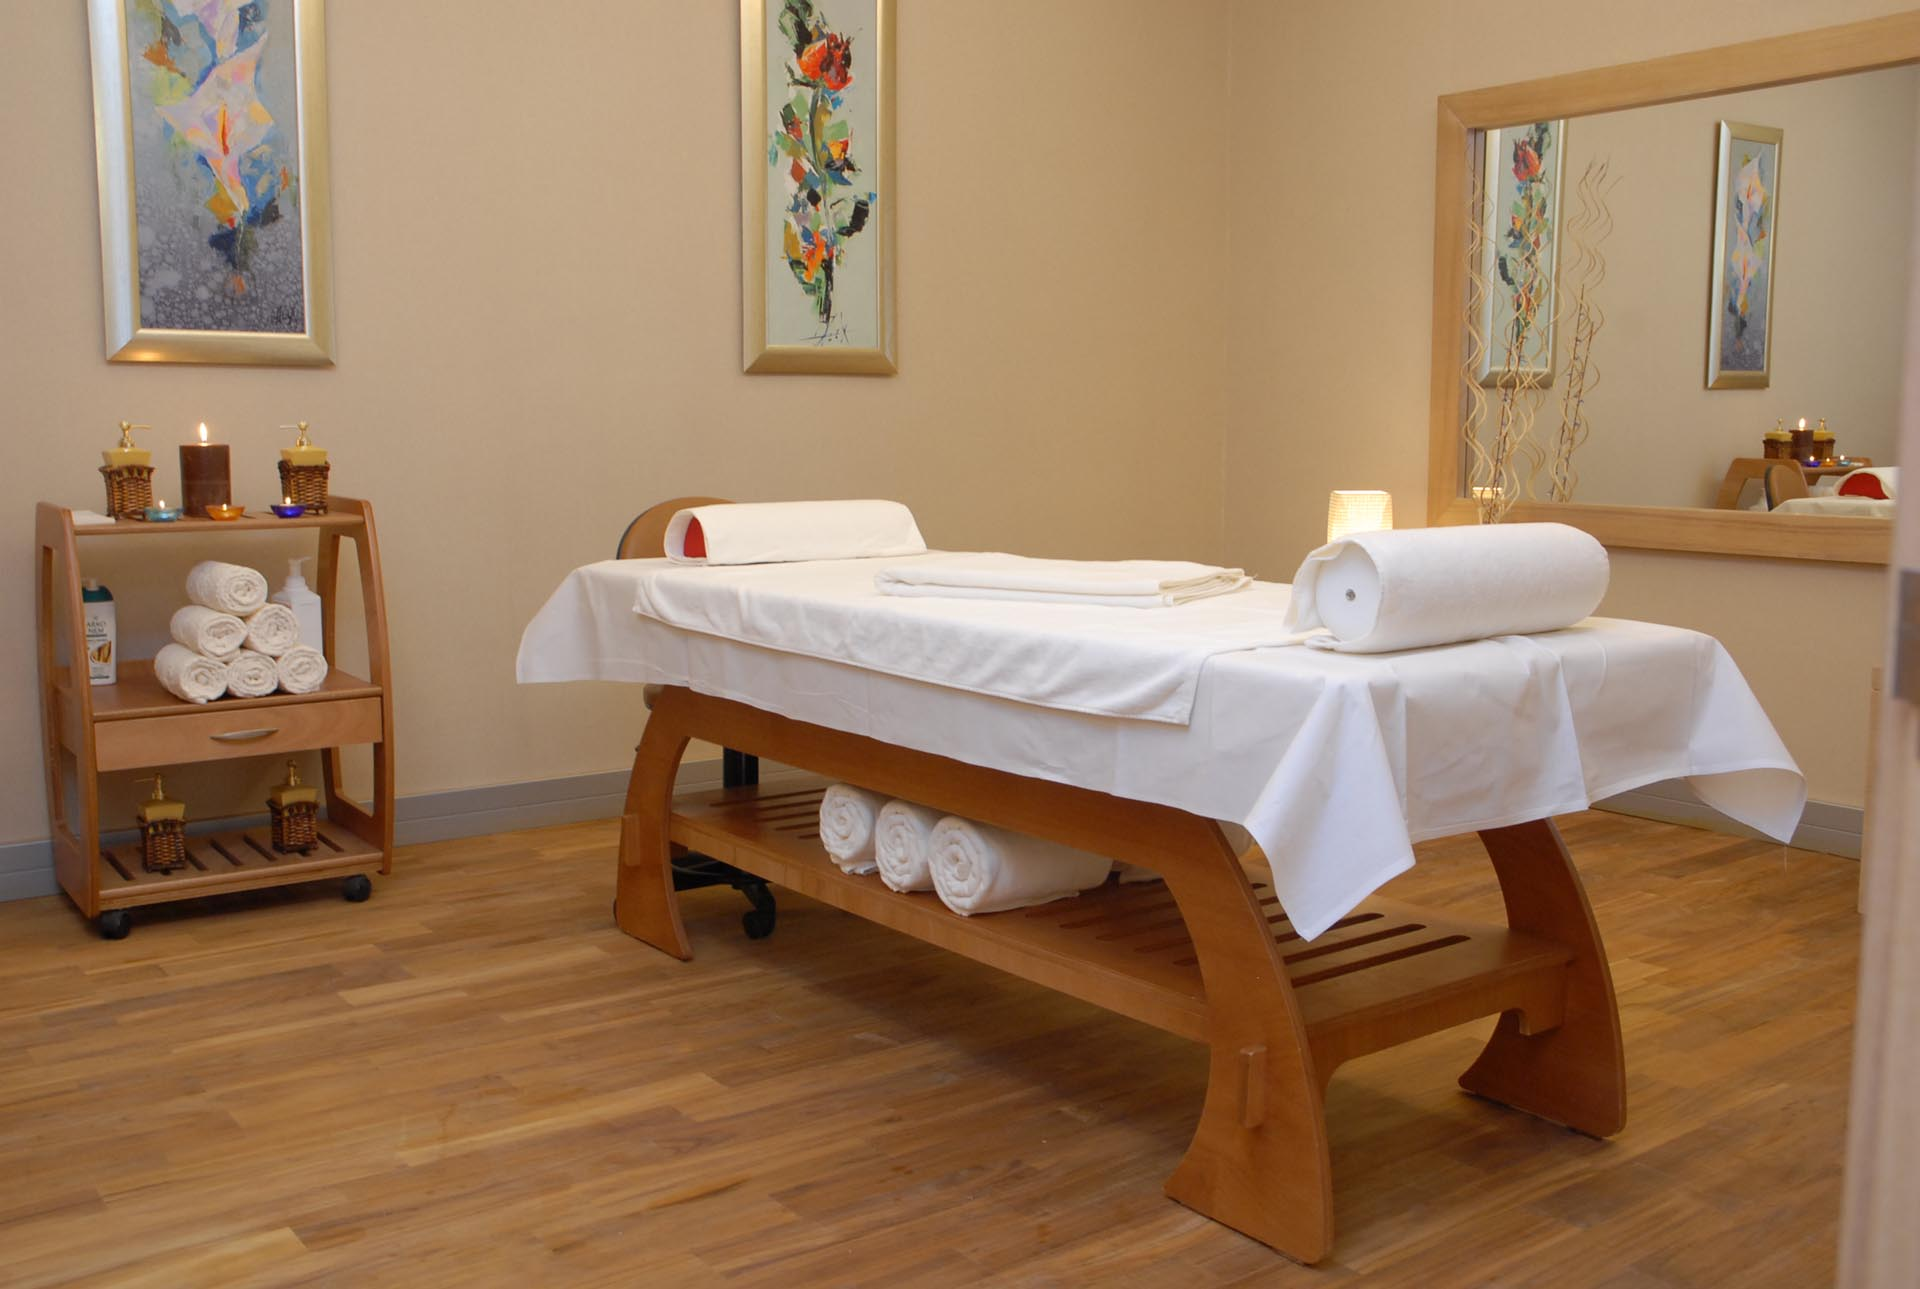 Massaging Table in Spa at WOW Istanbul Hotel